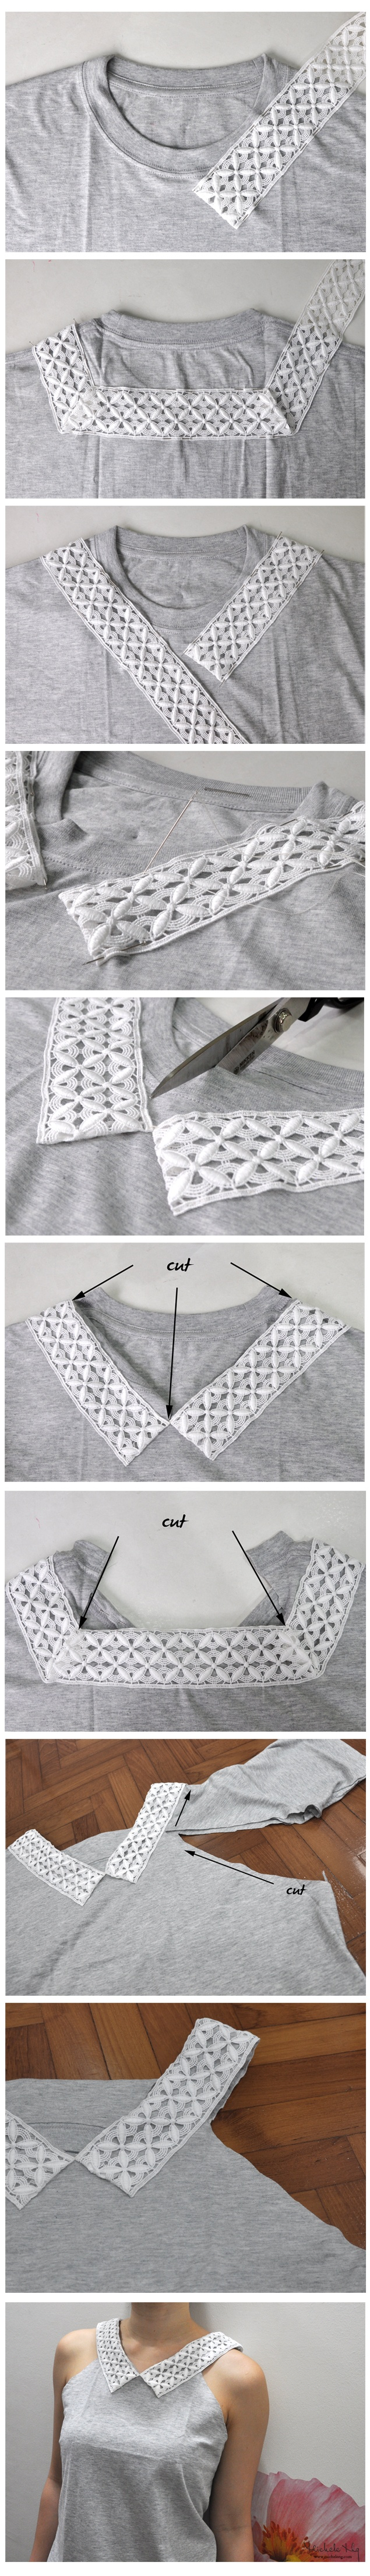 How to upcycle a plain tee